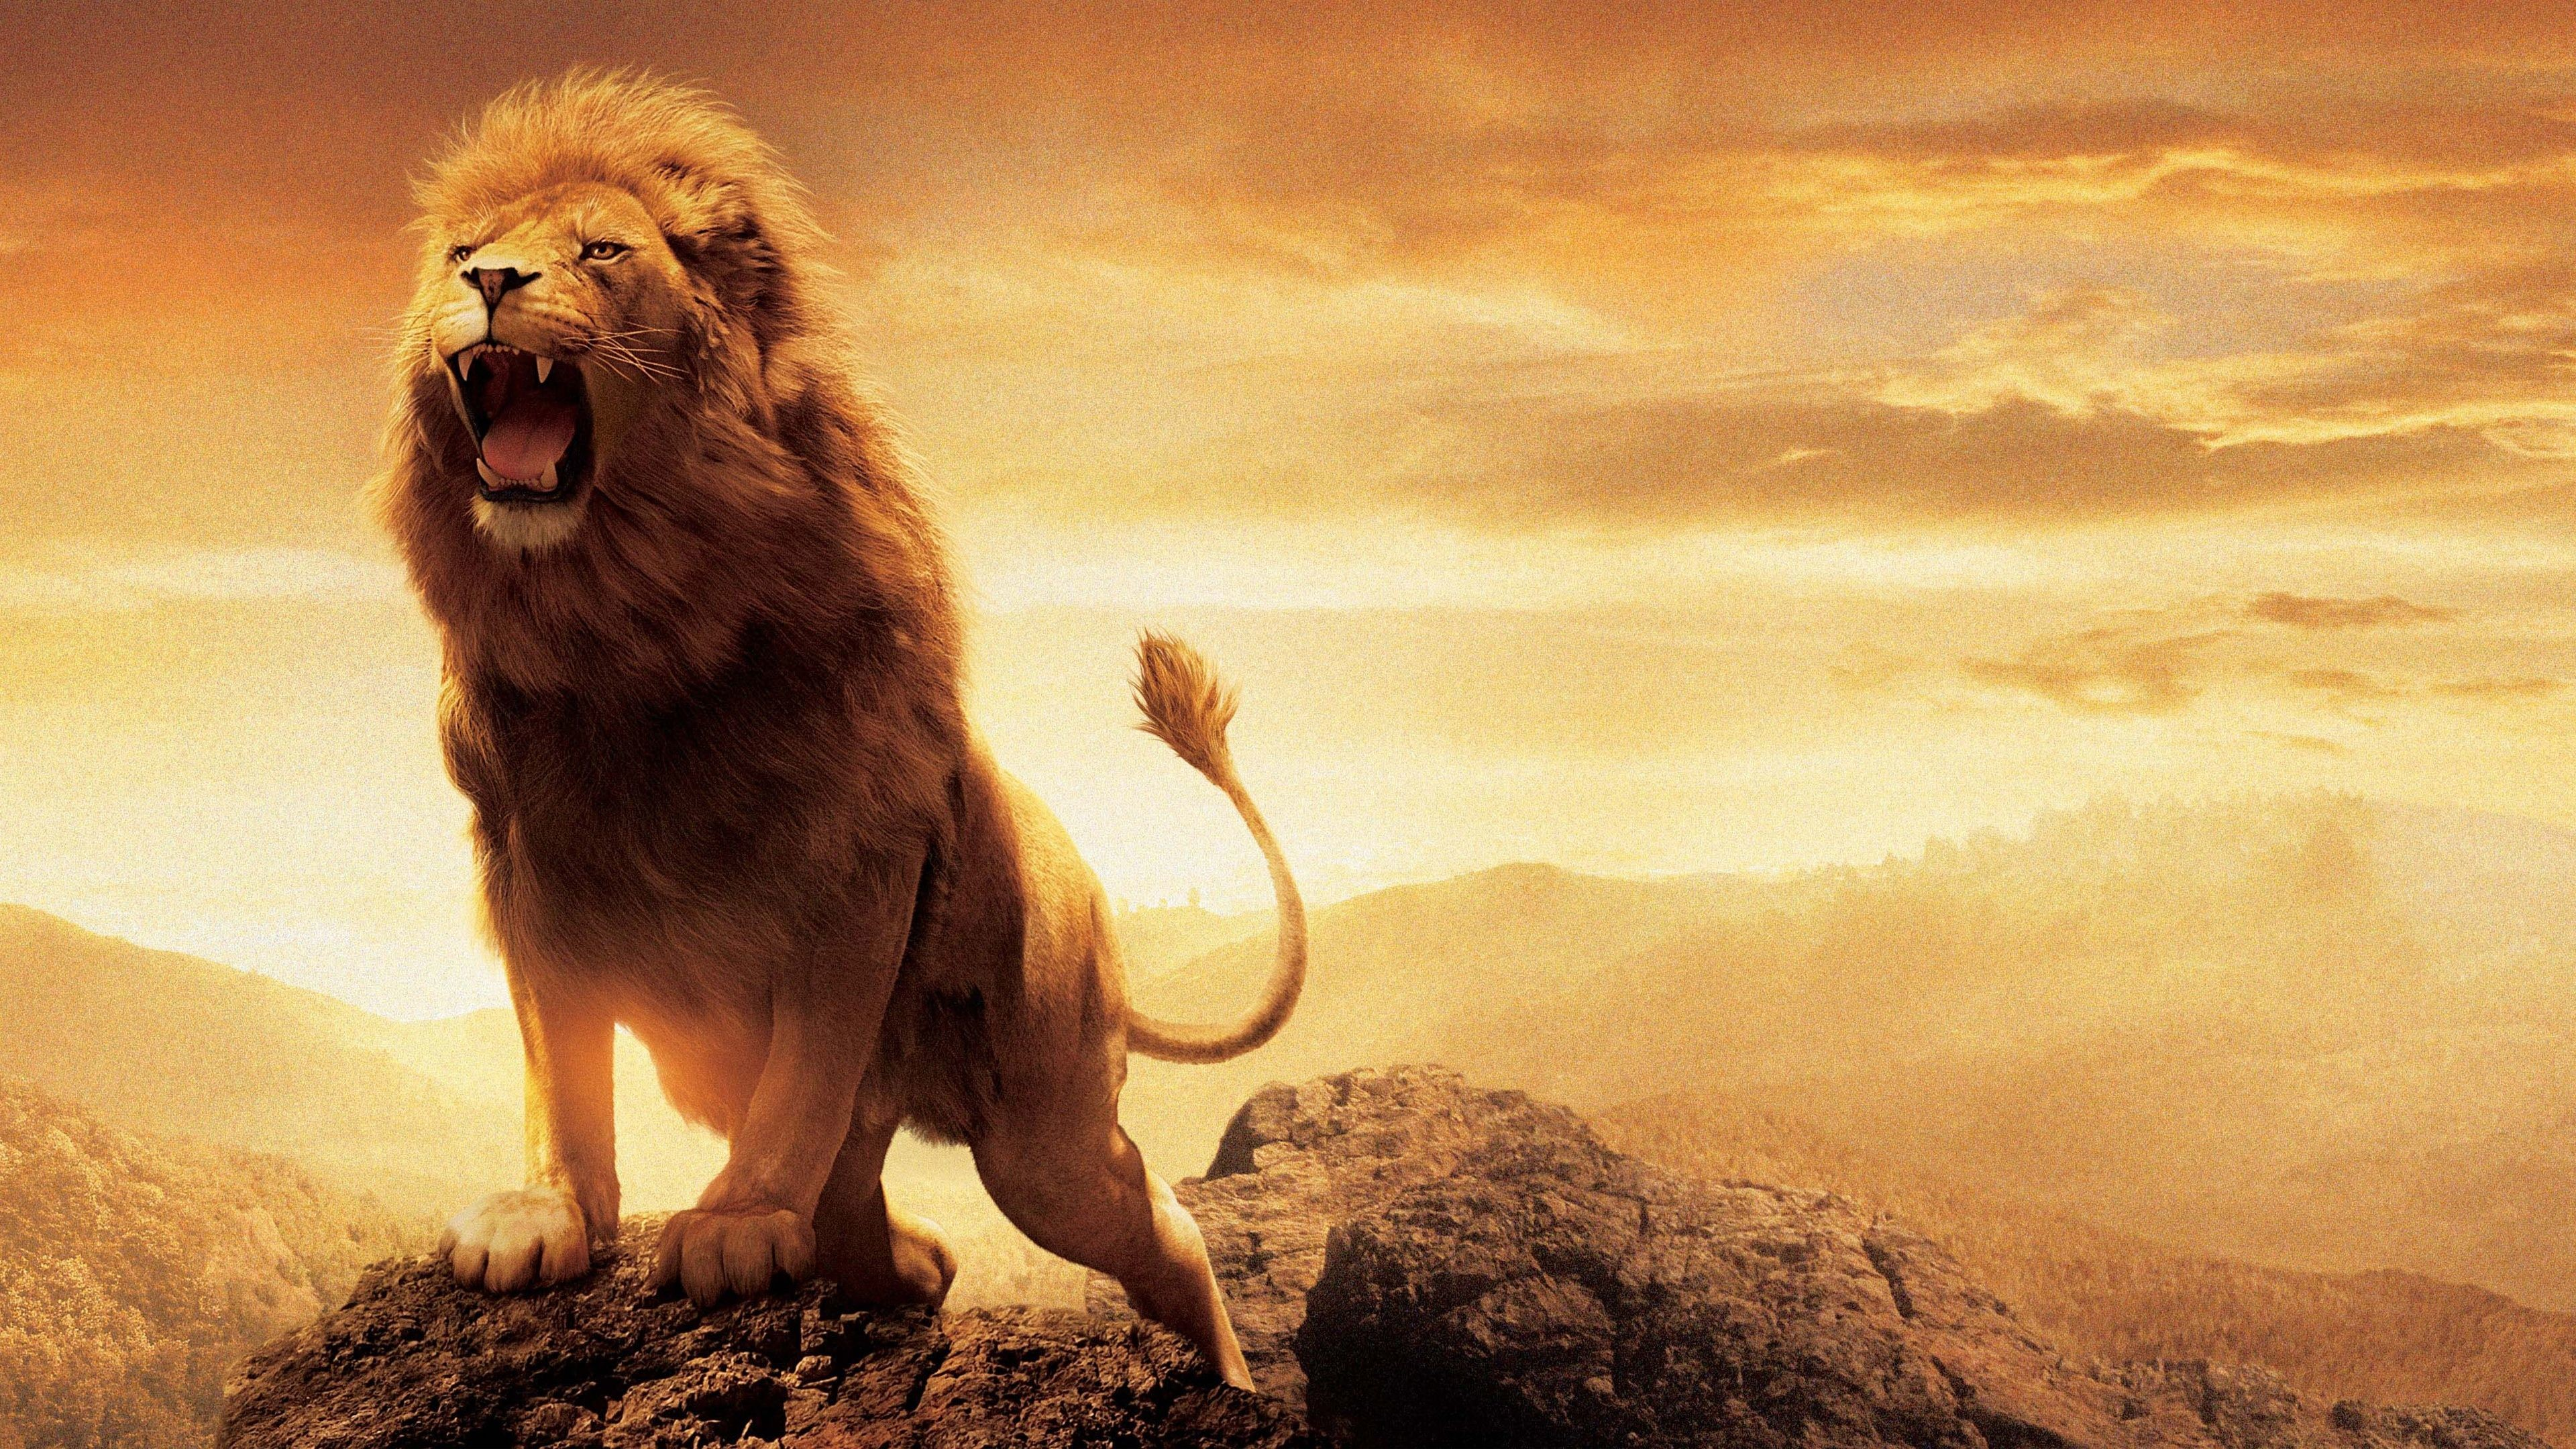 Res: 3840x2160, Narnia Lion Aslan Wallpapers | HD Wallpapers